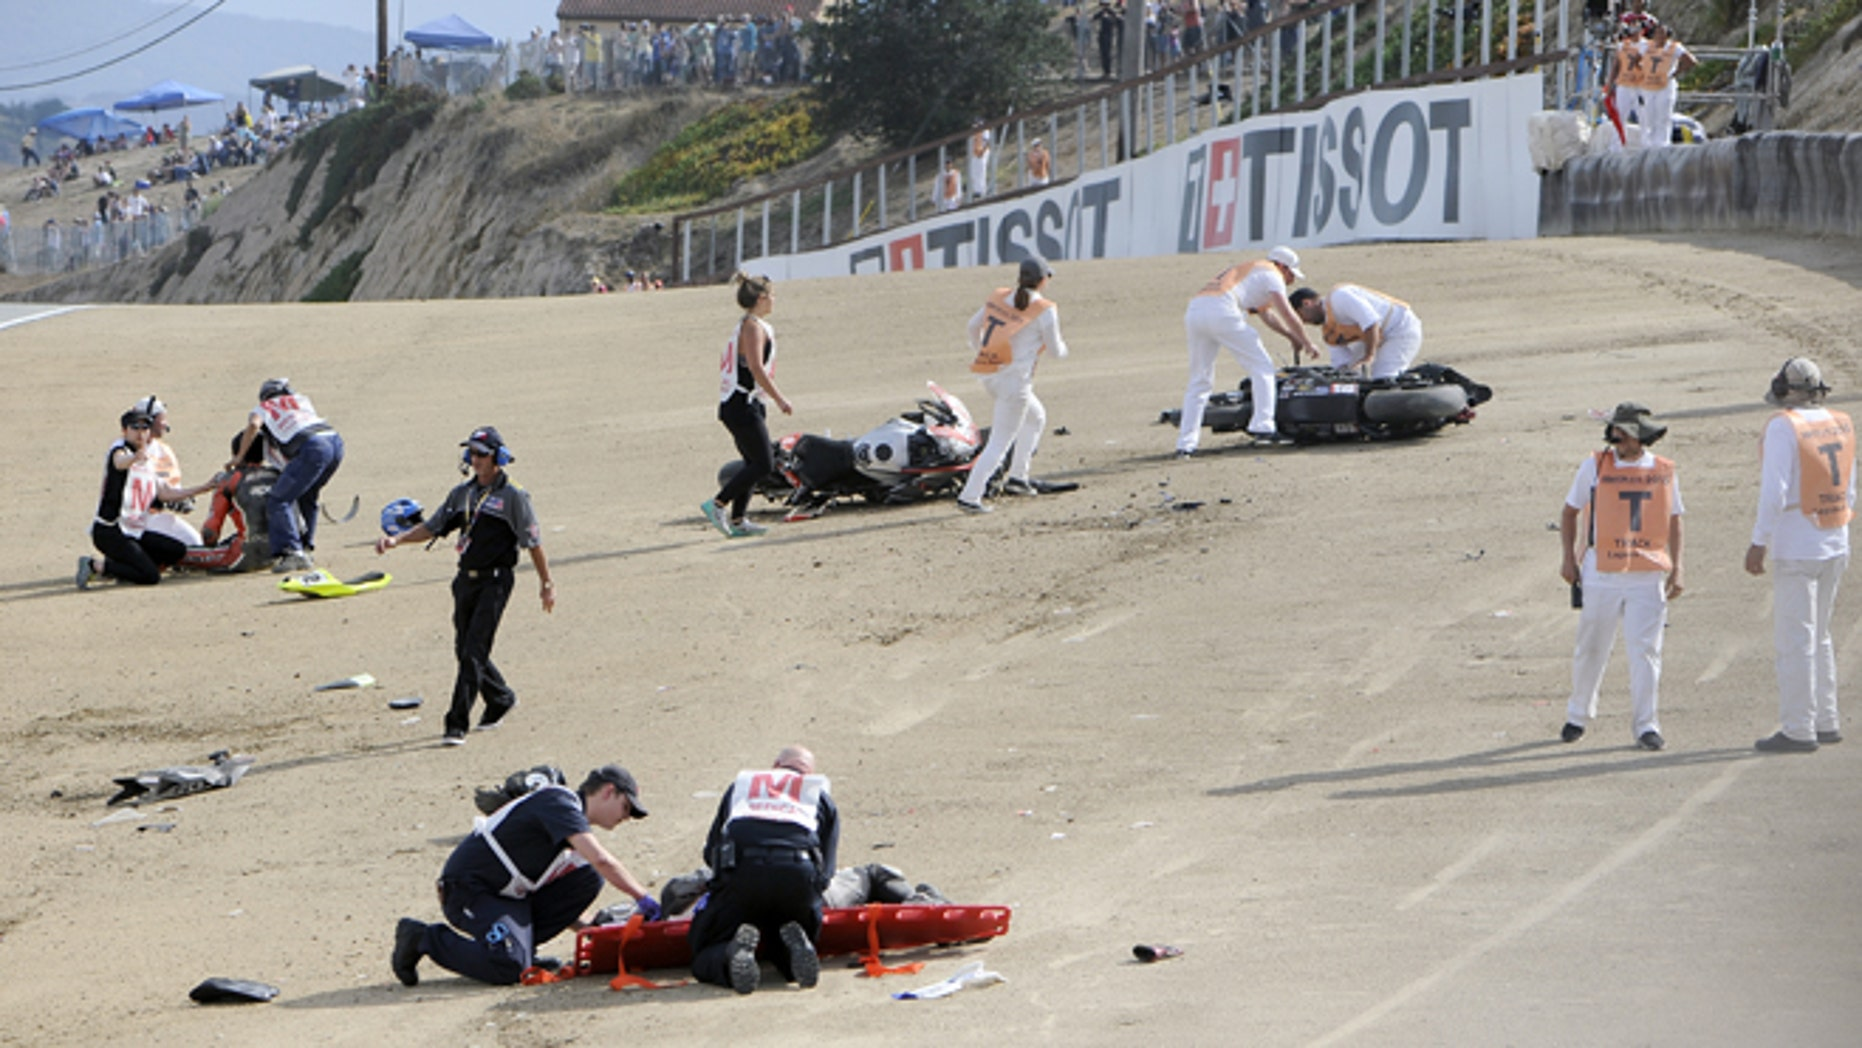 In this Sunday, July 19, 2015, photo, medical and track personnel attend to downed riders after a chain reaction crash on the first lap of a World Superbike race at Mazda Raceway at Laguna Seca in Monterey, Calif. Two Spanish racers were killed in the crash. (Nic Coury/Monterey County Weekly via AP)